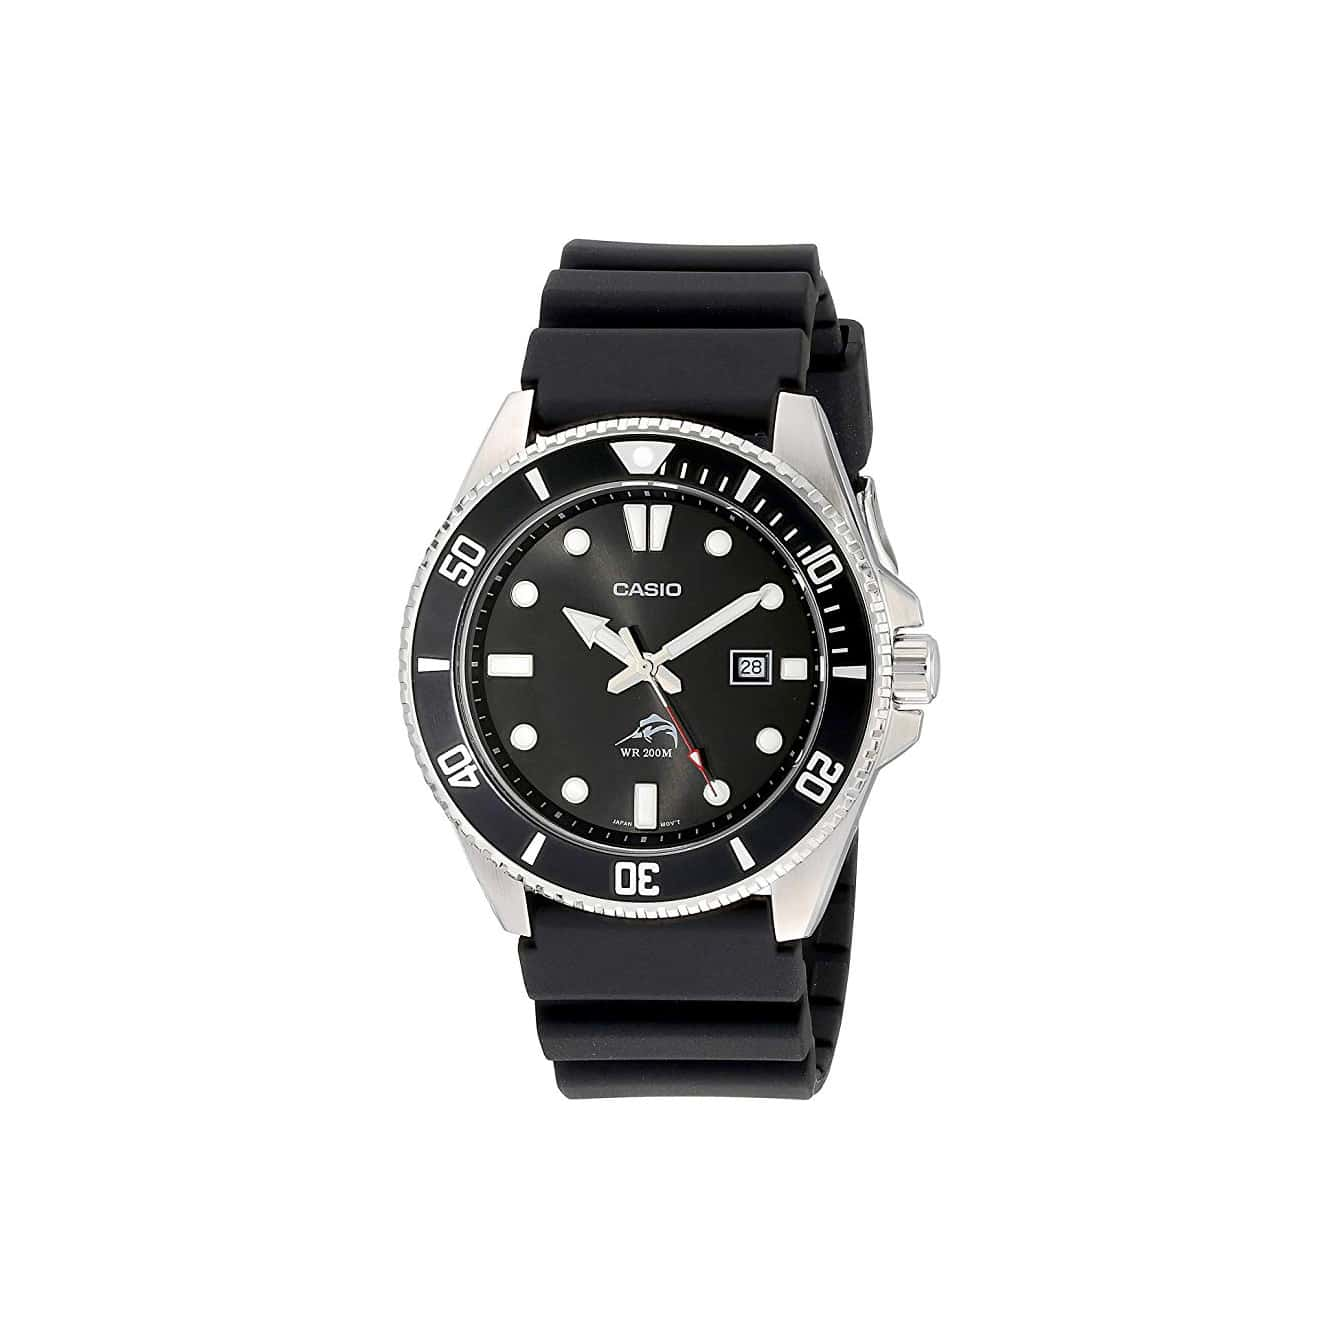 Casio MDV106 Dive Watch